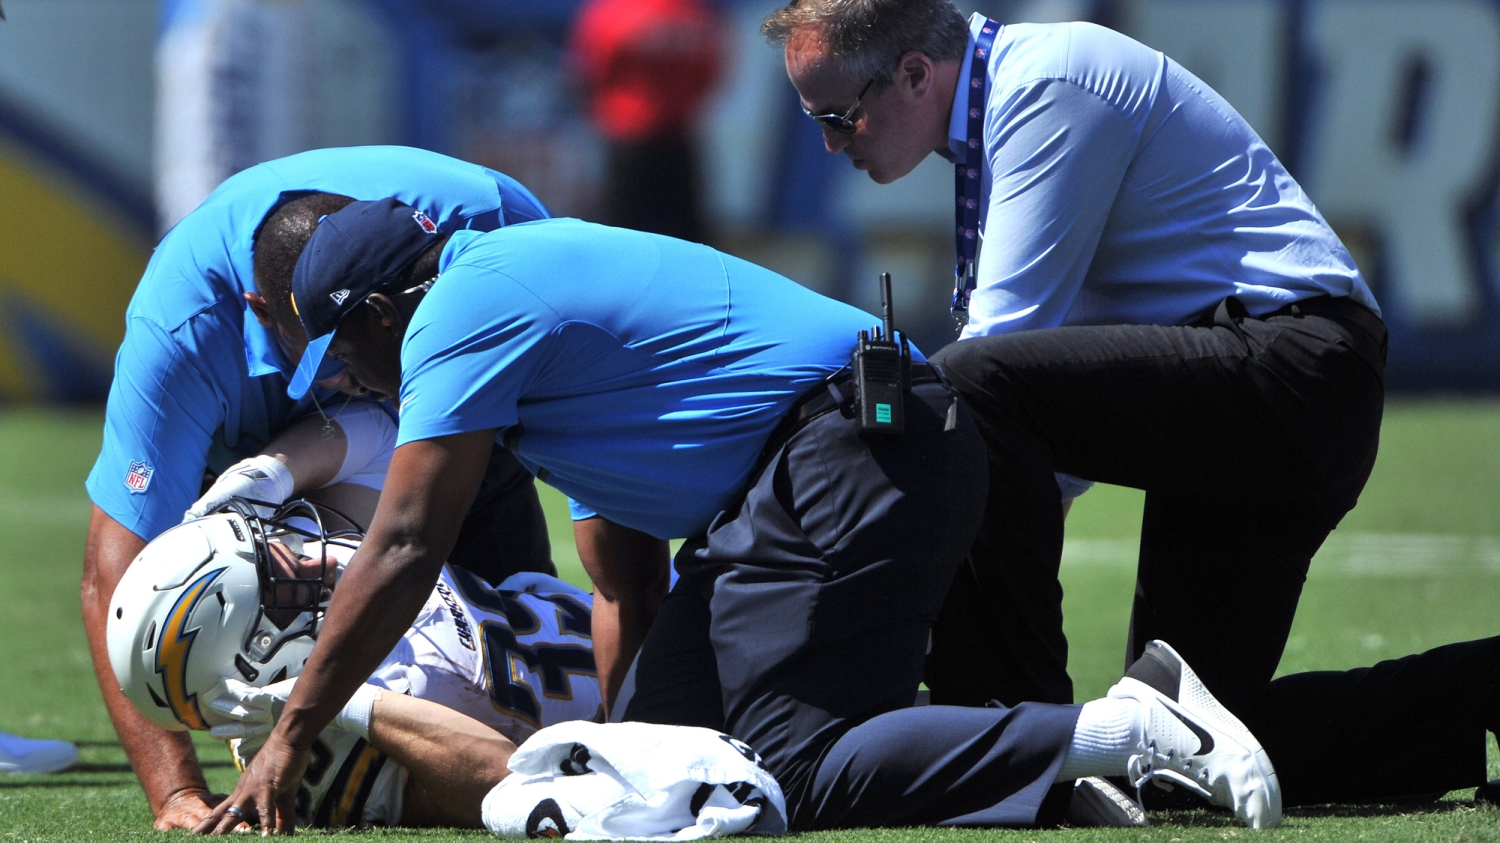 e59dc02f2d66 New ACL surgery could cut rehab and recovery time in half